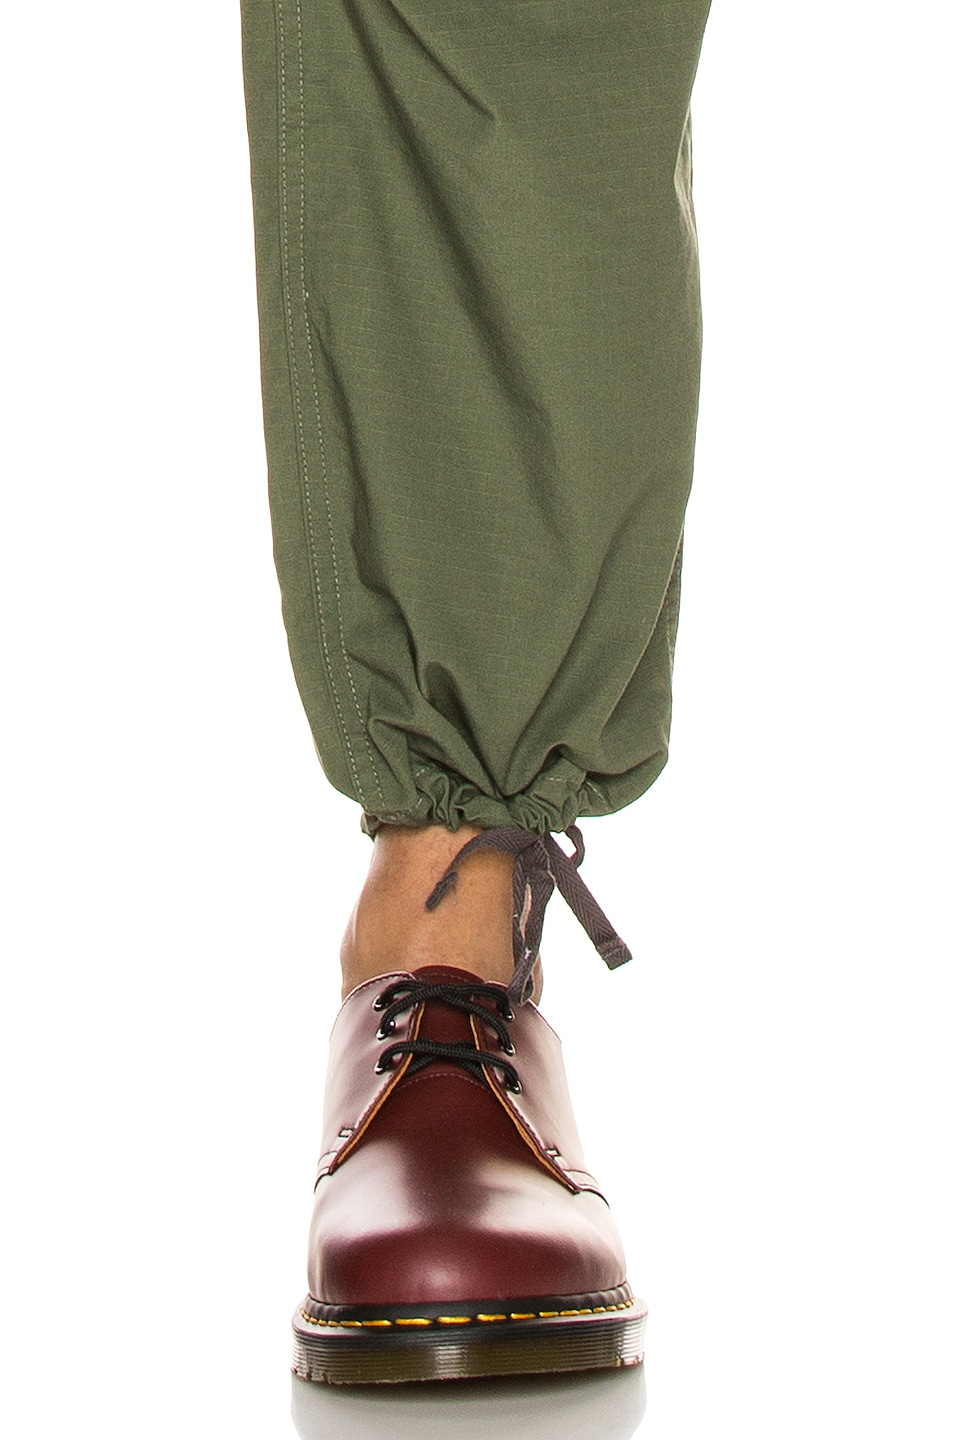 Image 7 of Engineered Garments FA Pant in Olive Cotton Ripstop